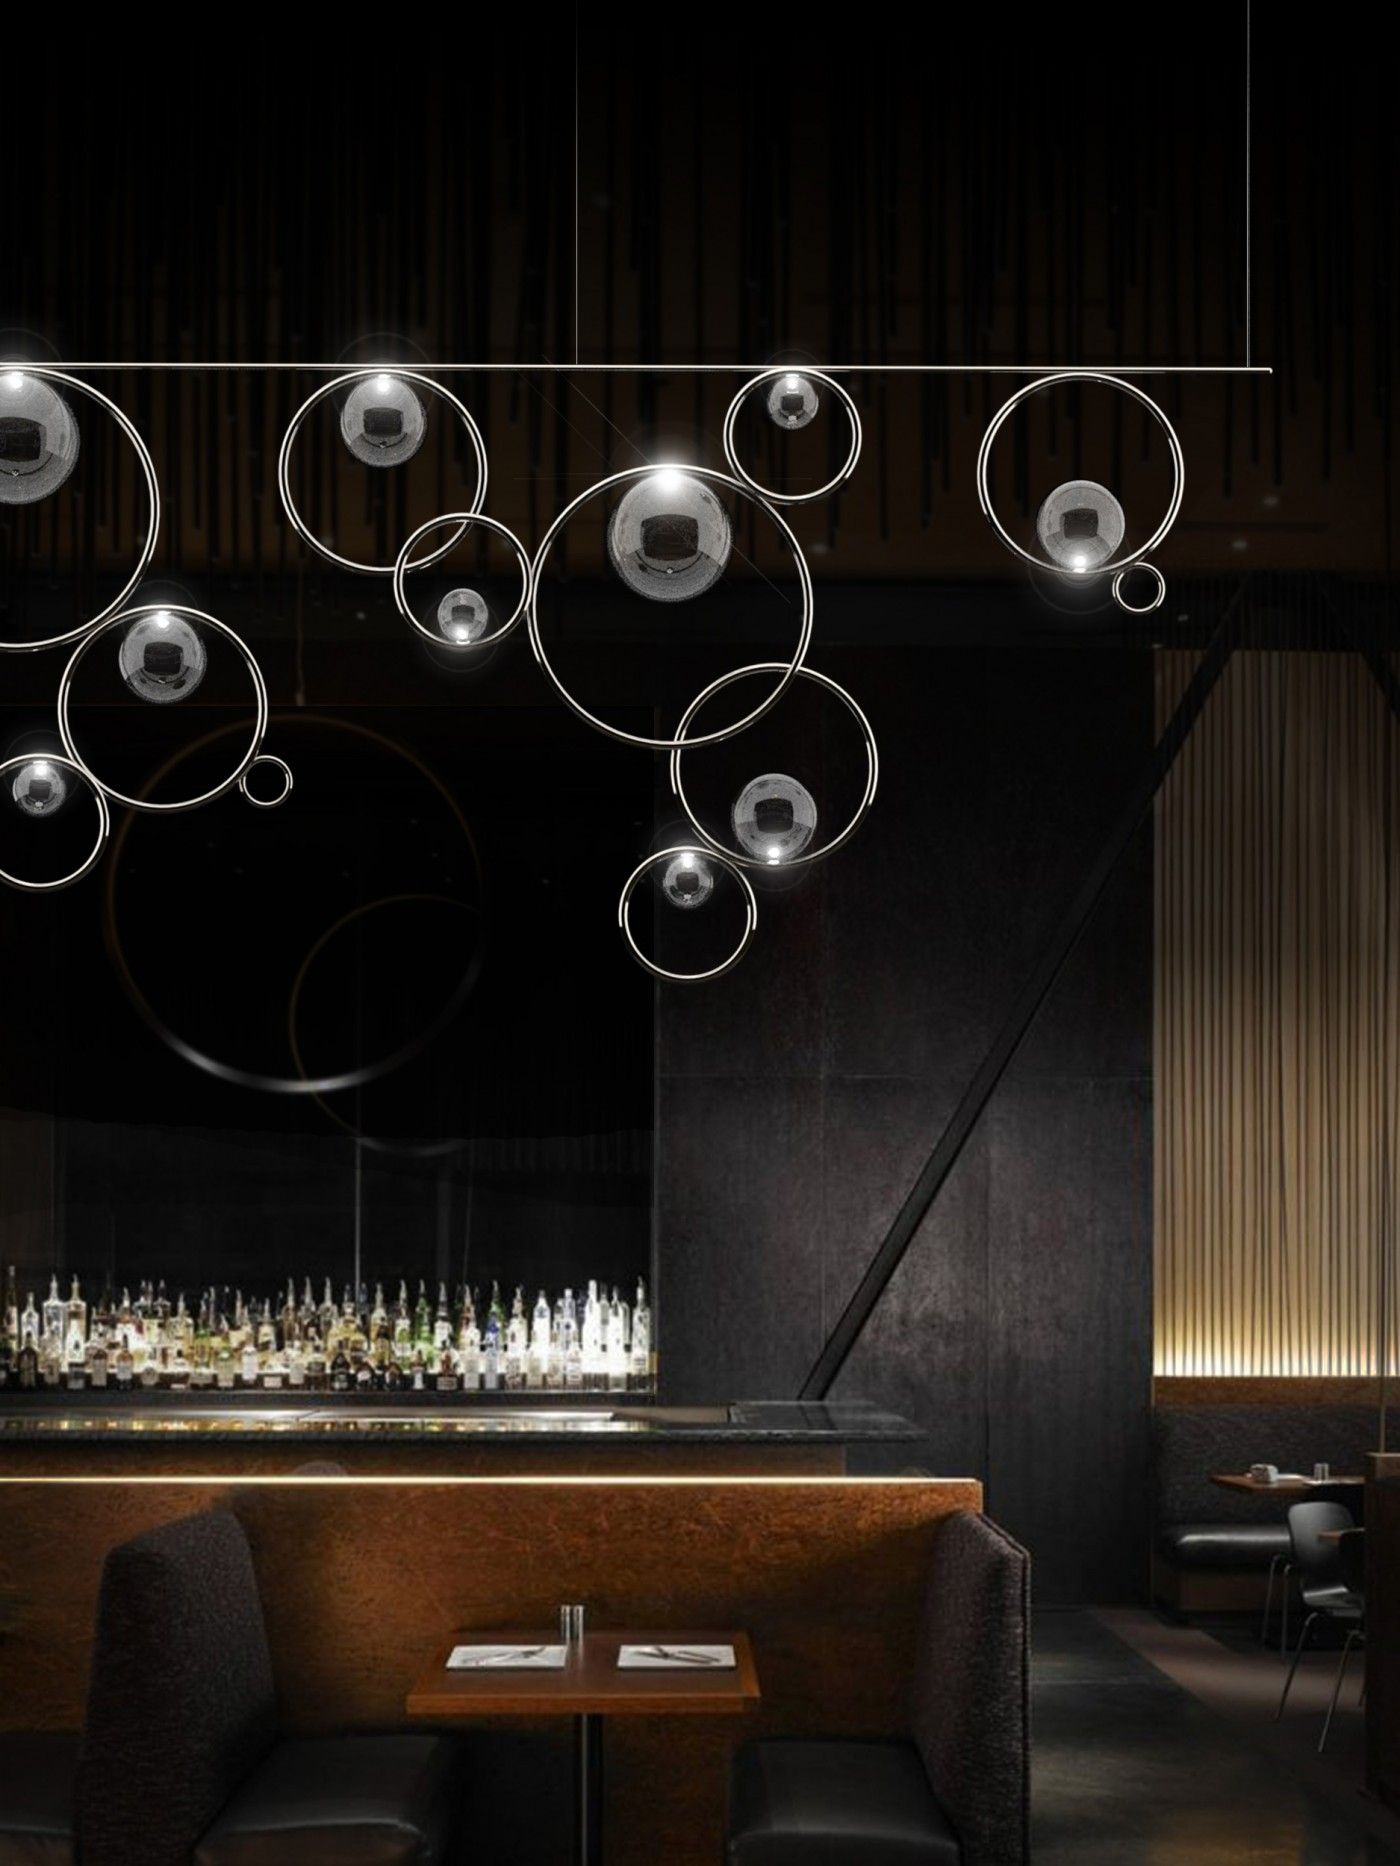 Home bar design-ideen pin by phil mcnaull on lighting ideas  pinterest  glasses bar and